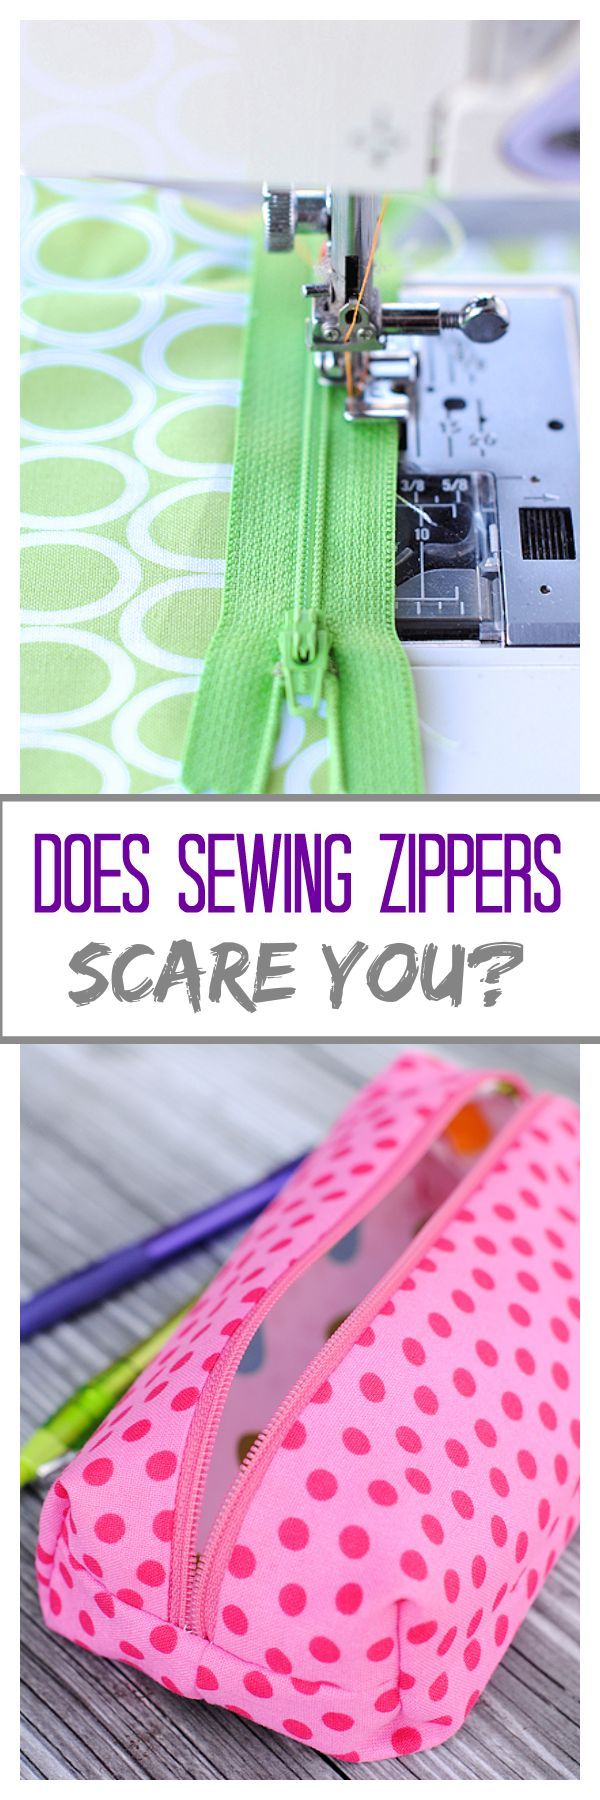 Are you scared of sewing zippers? Not anymore! Great tutorial